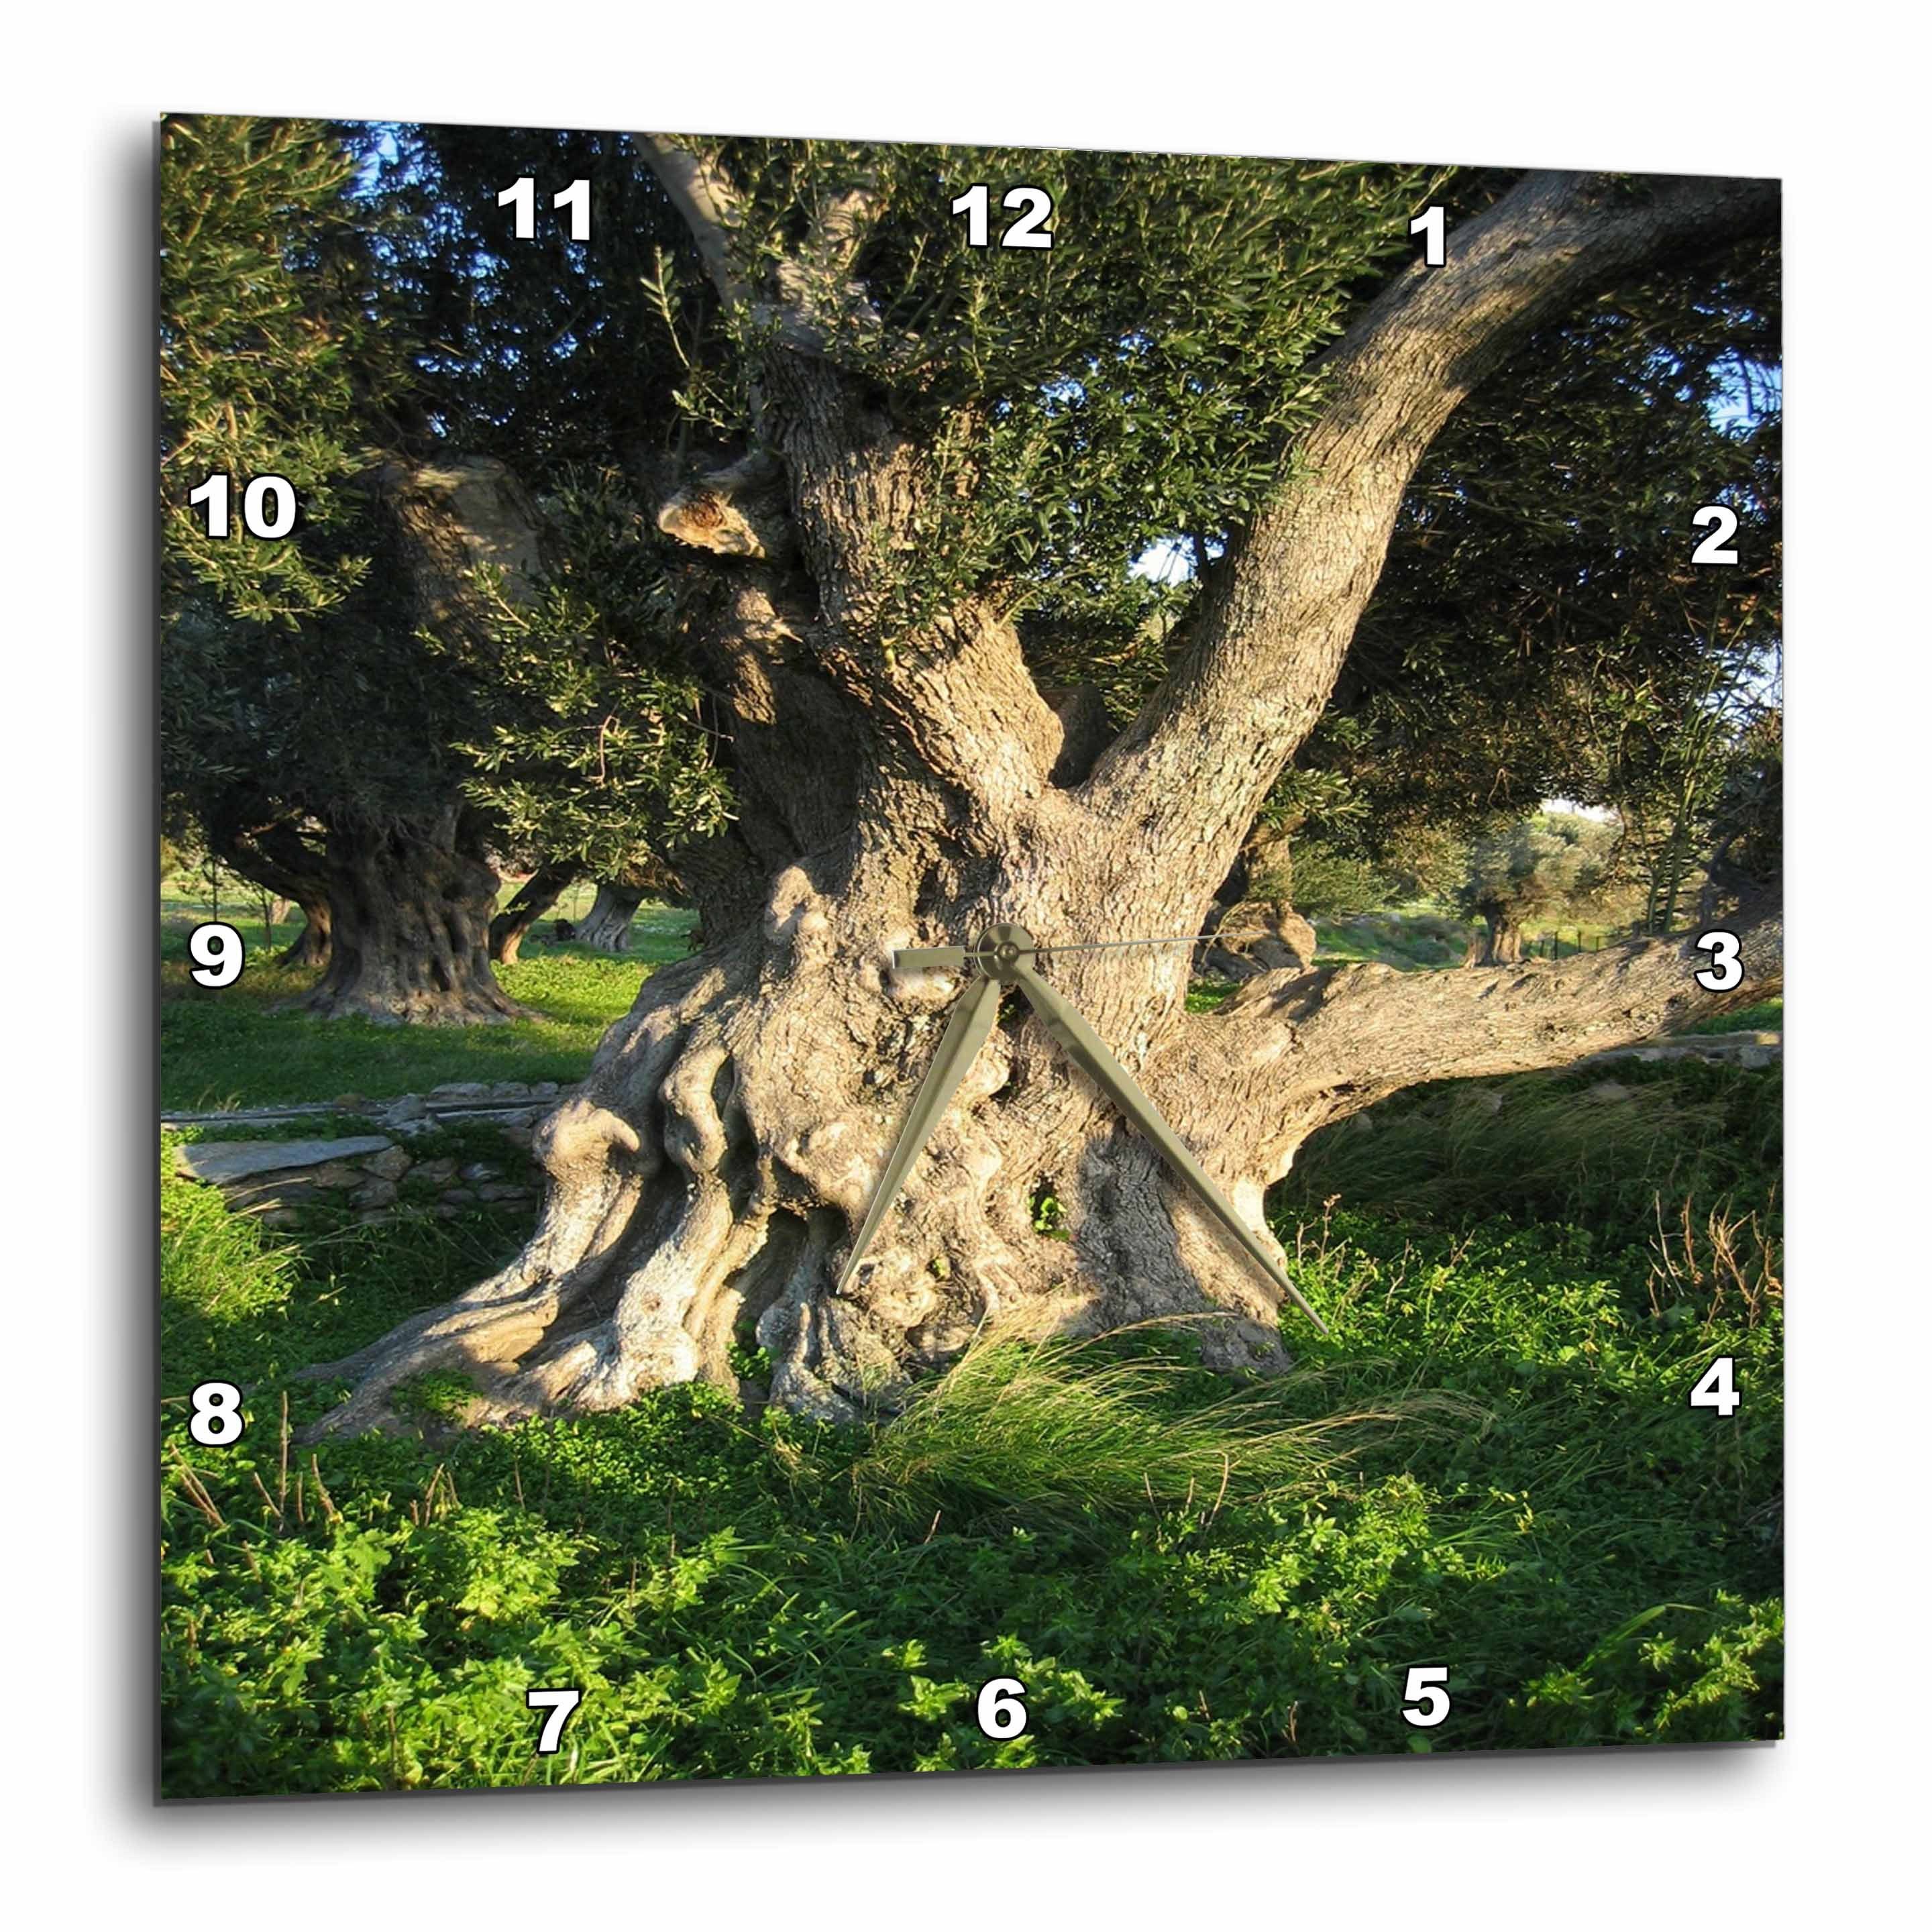 3dRose Old Olive Tree-The olive Olea europaea, a small tree in the family Oleaceae, Wall Clock, 10 by 10-inch